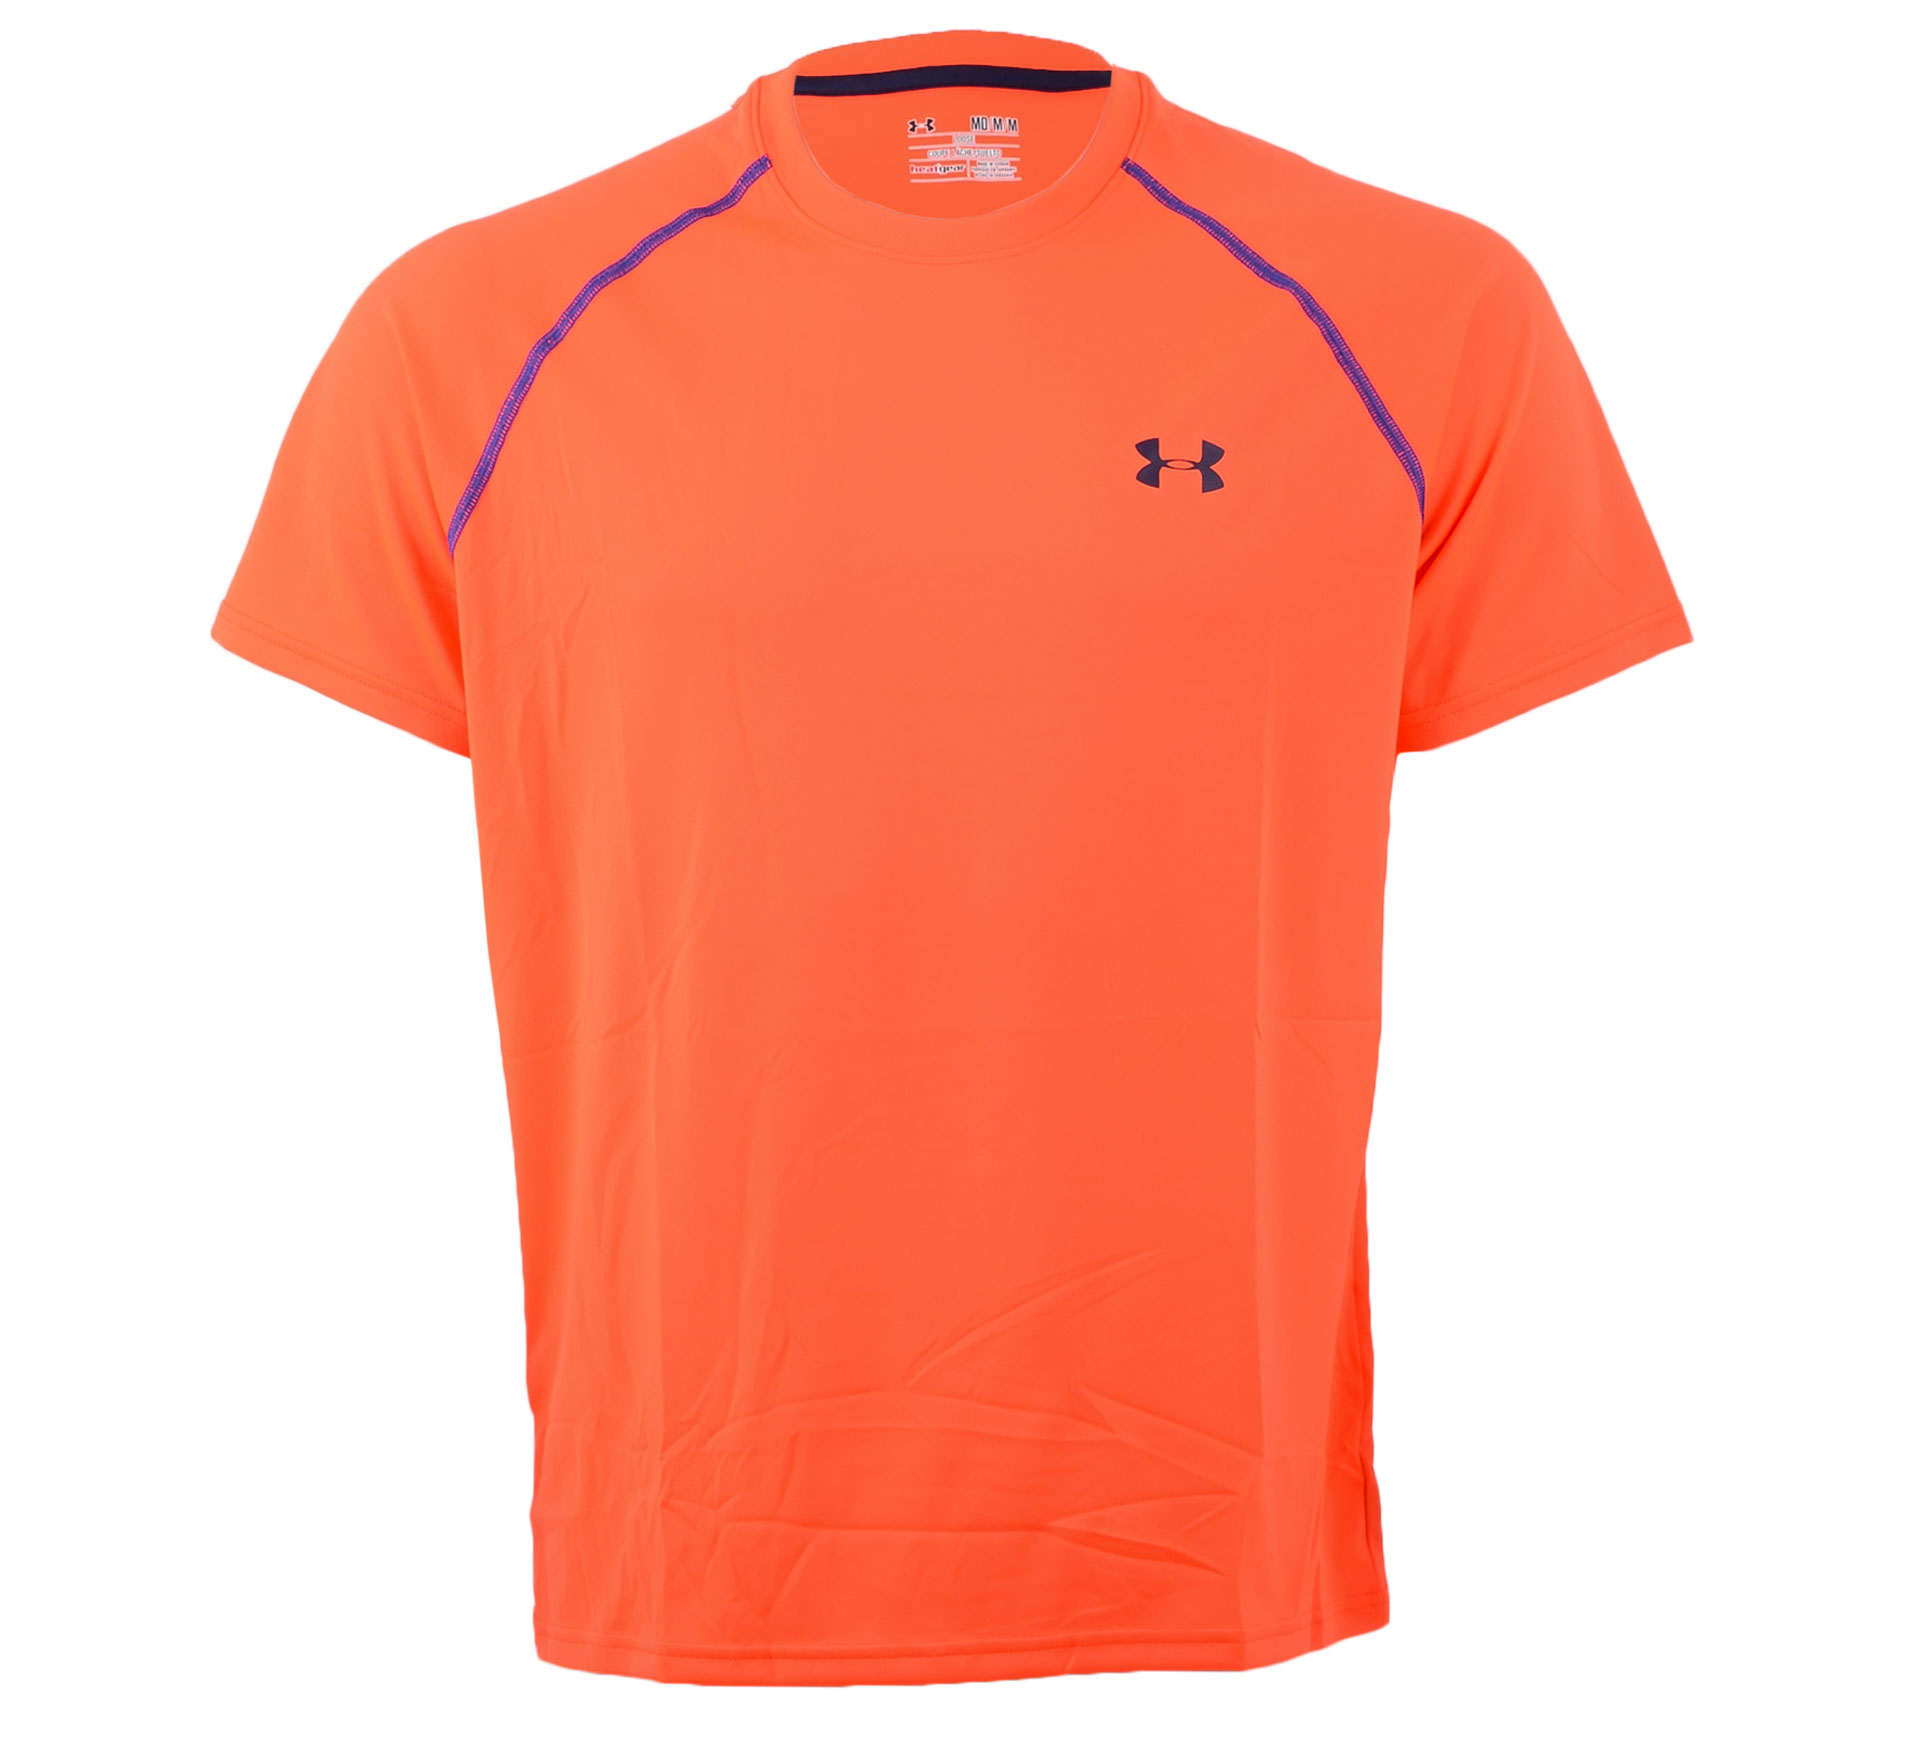 Under Armour  HeatGear Loose Tech T-shirt rood - blauw